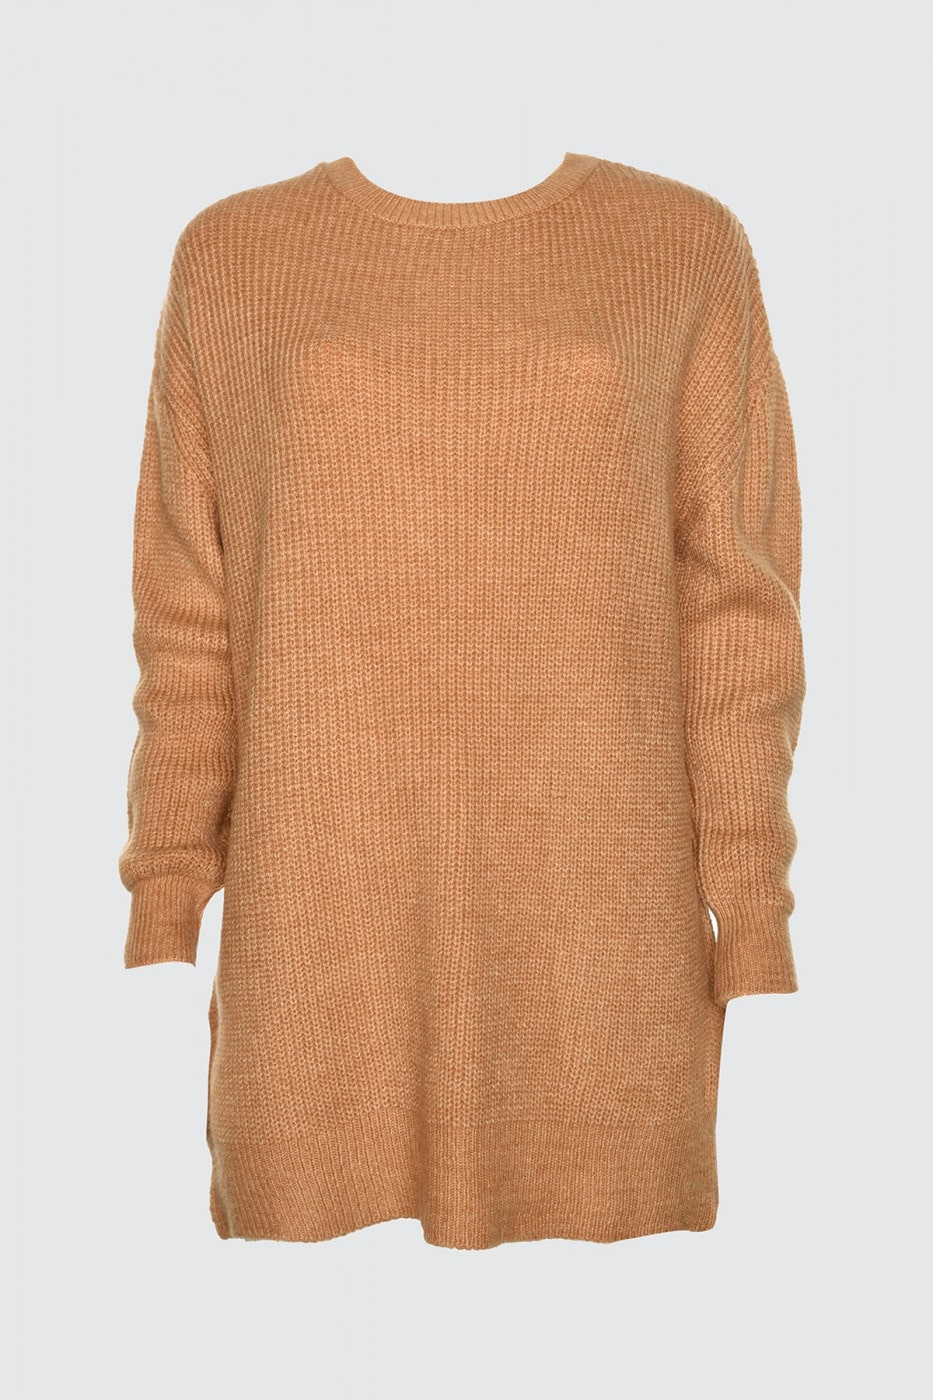 Trendyol Camel Bike Collar Oversize Knitwear Sweater